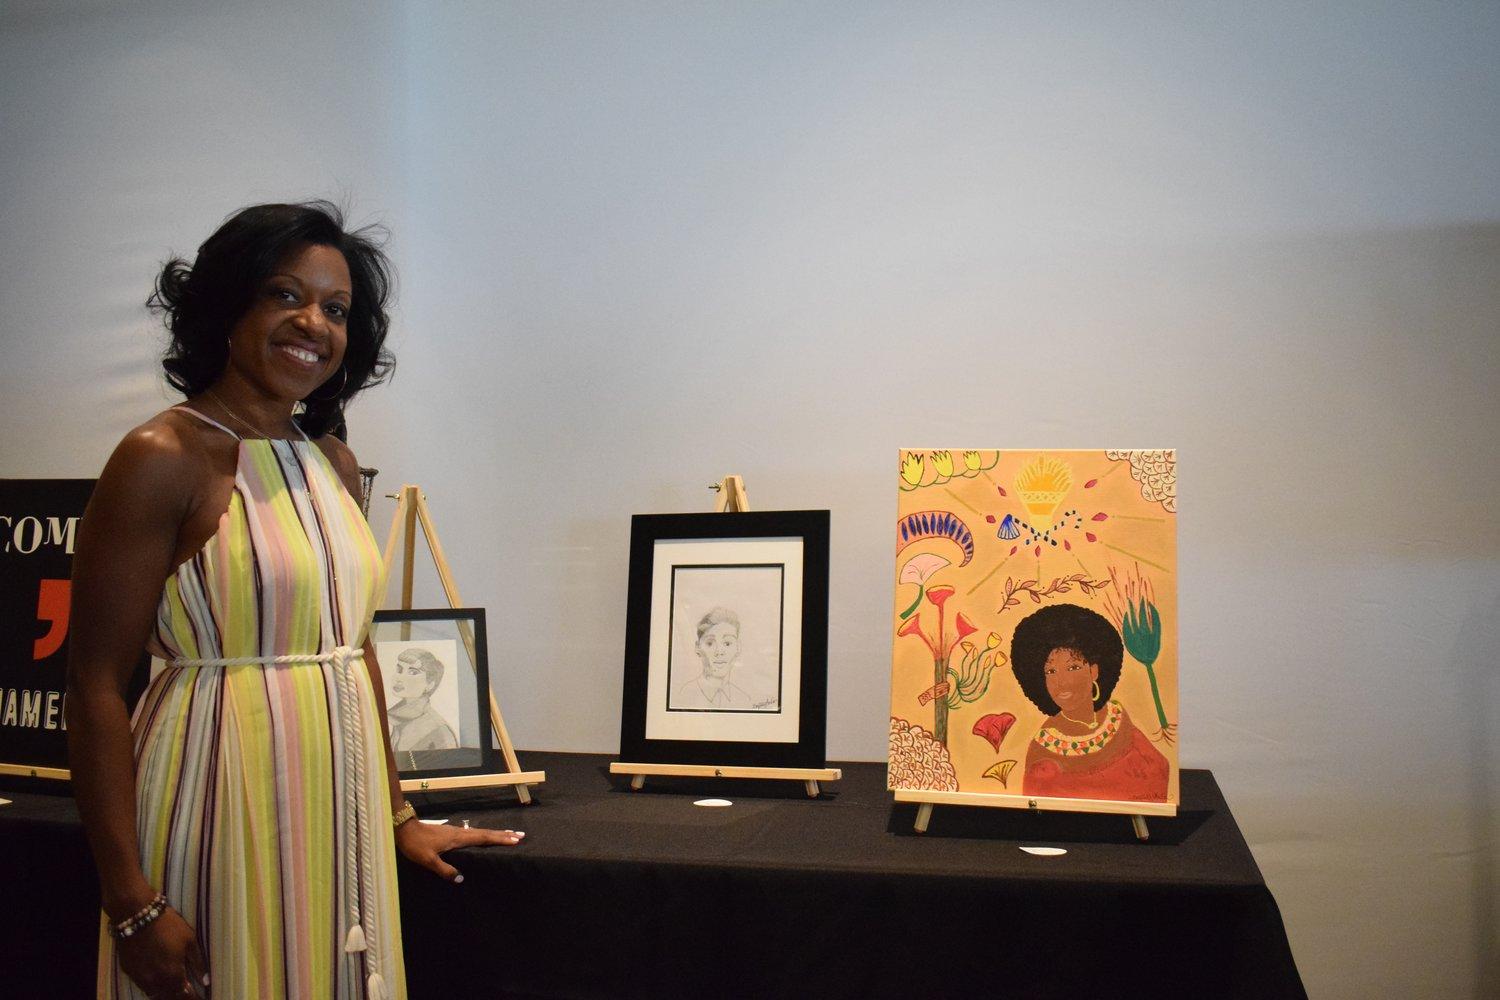 Natasha Welch, of the Elmont Muscle Moms, helped set up the Elmont Art Gallery and displayed her own original artwork.